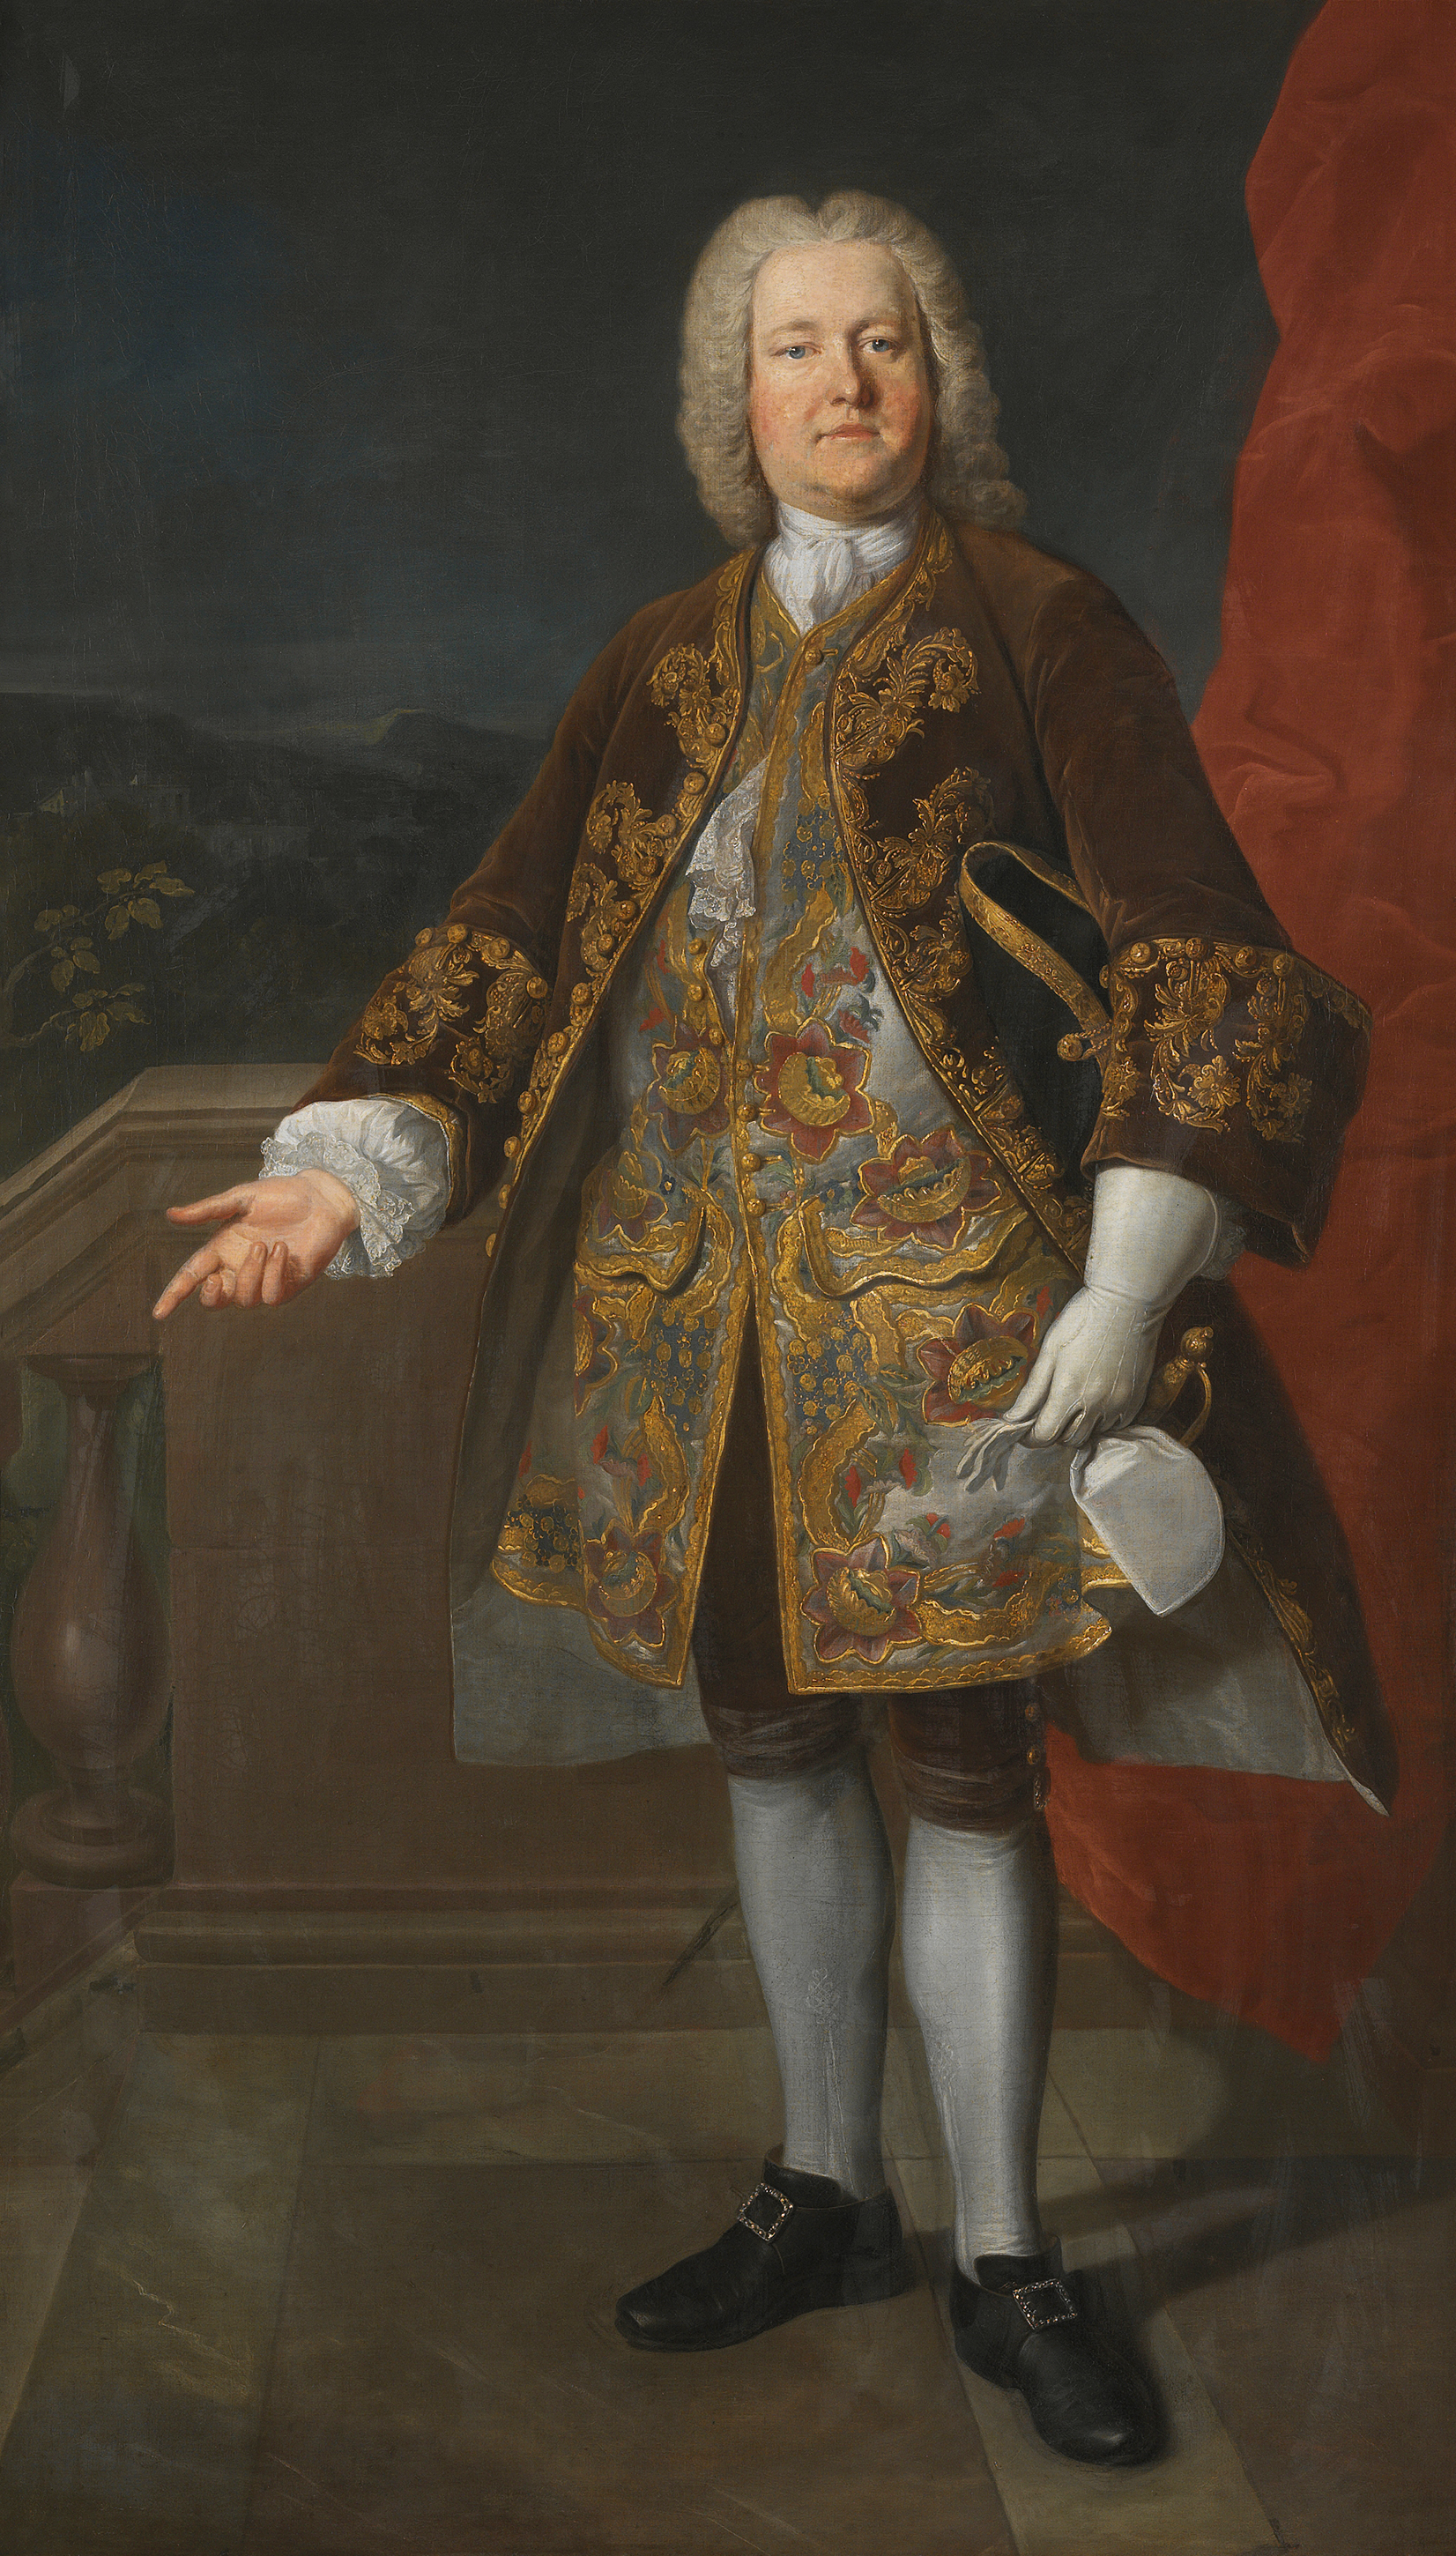 Portrait of Carl Gustaf Tessin (1695-1770), Count; President of the chancellery (Swedish prime minister) from 1746 to 1752 | Portraits of Kings